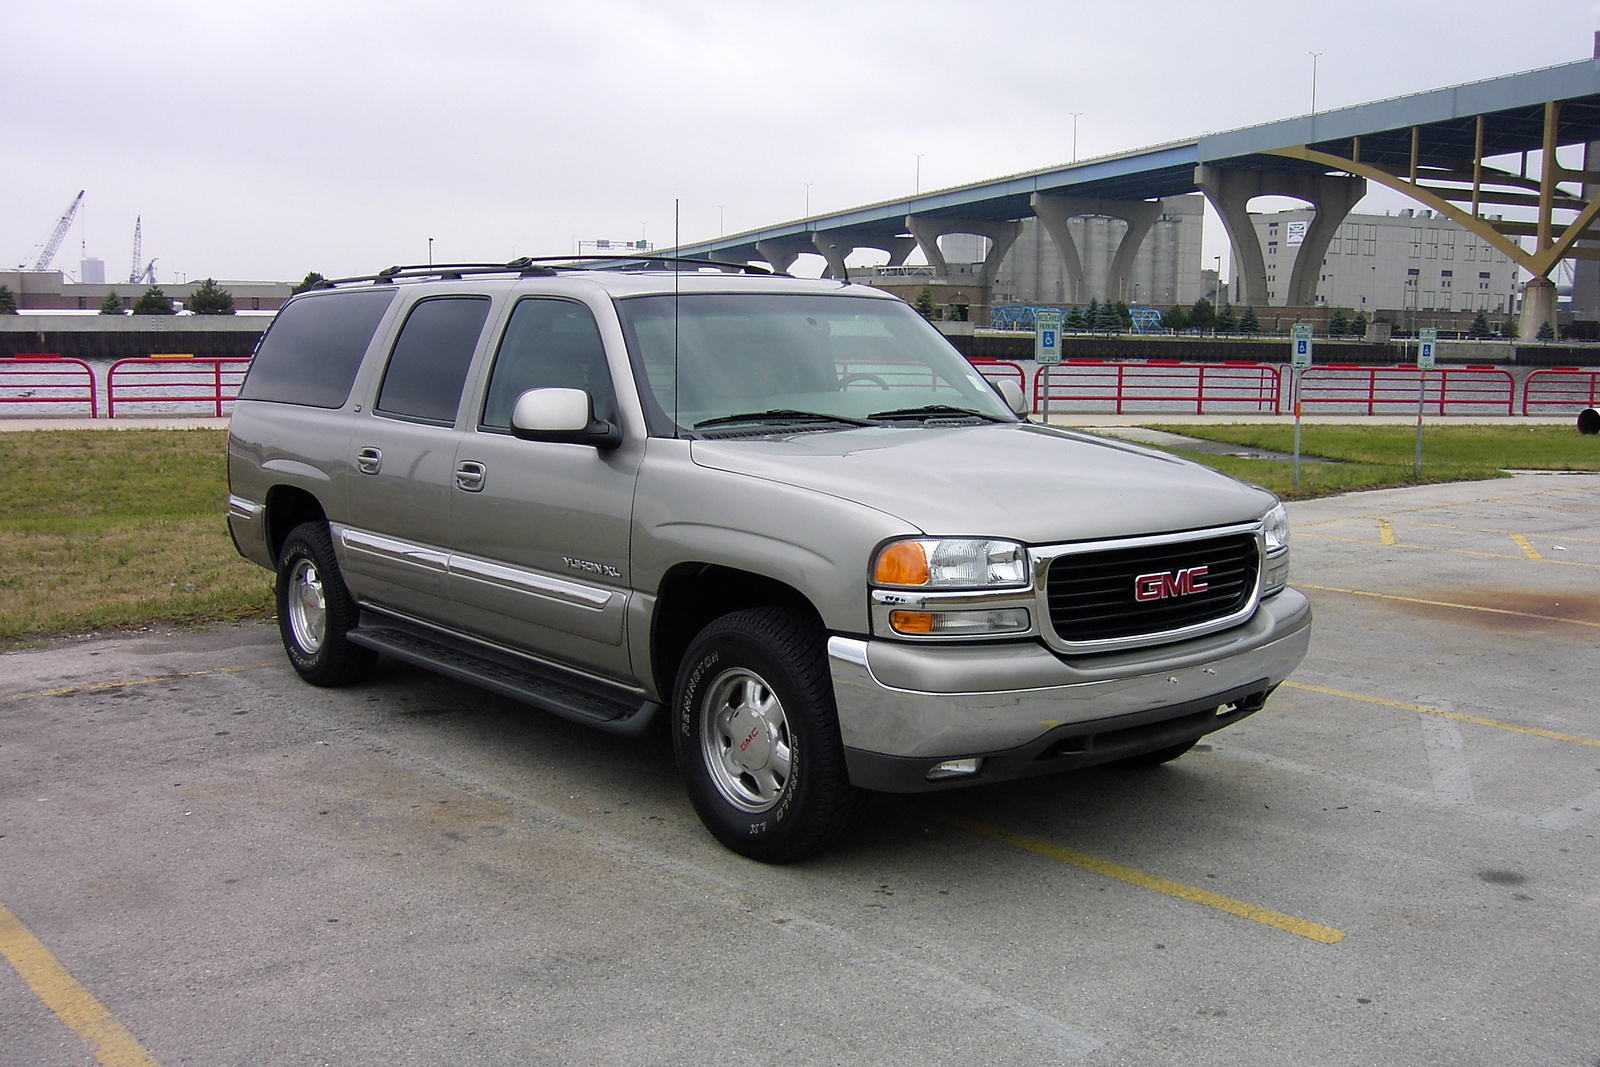 2005 gmc yukon xl overview cargurus. Black Bedroom Furniture Sets. Home Design Ideas